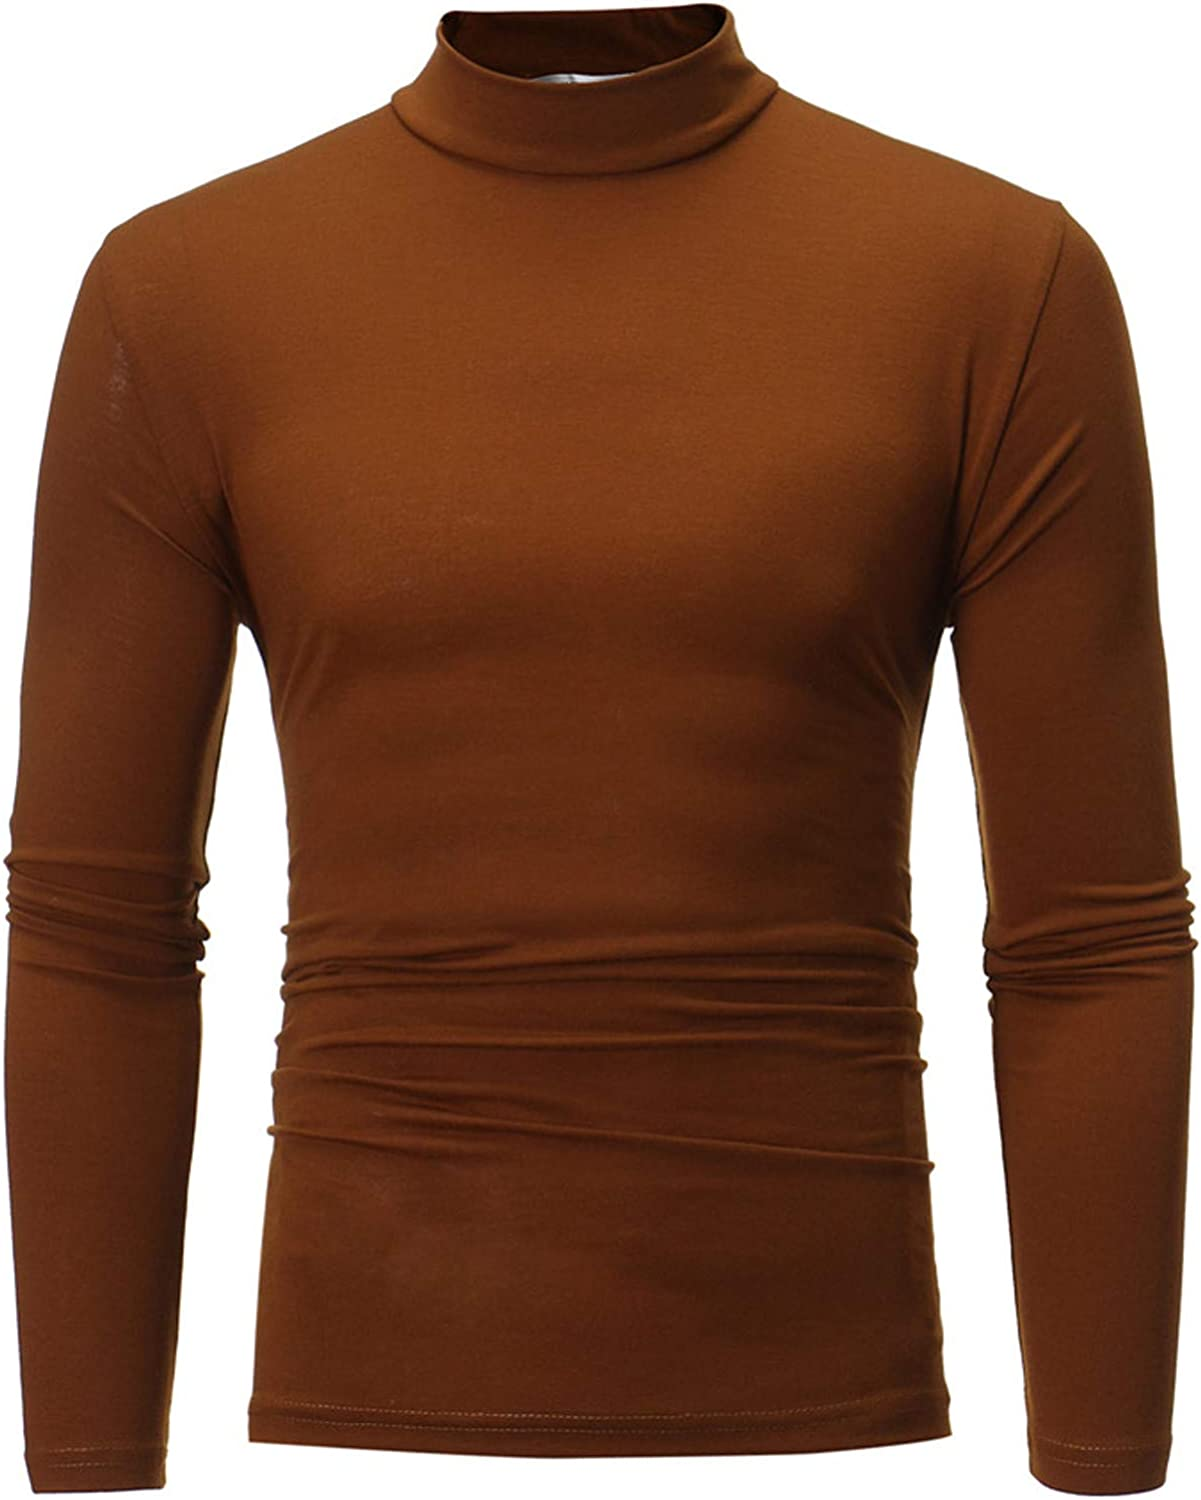 BEIBEIA Men Turtleneck A surprise price is realized Long Sleeve Tops Quantity limited Solid Stretch B Fit Slim